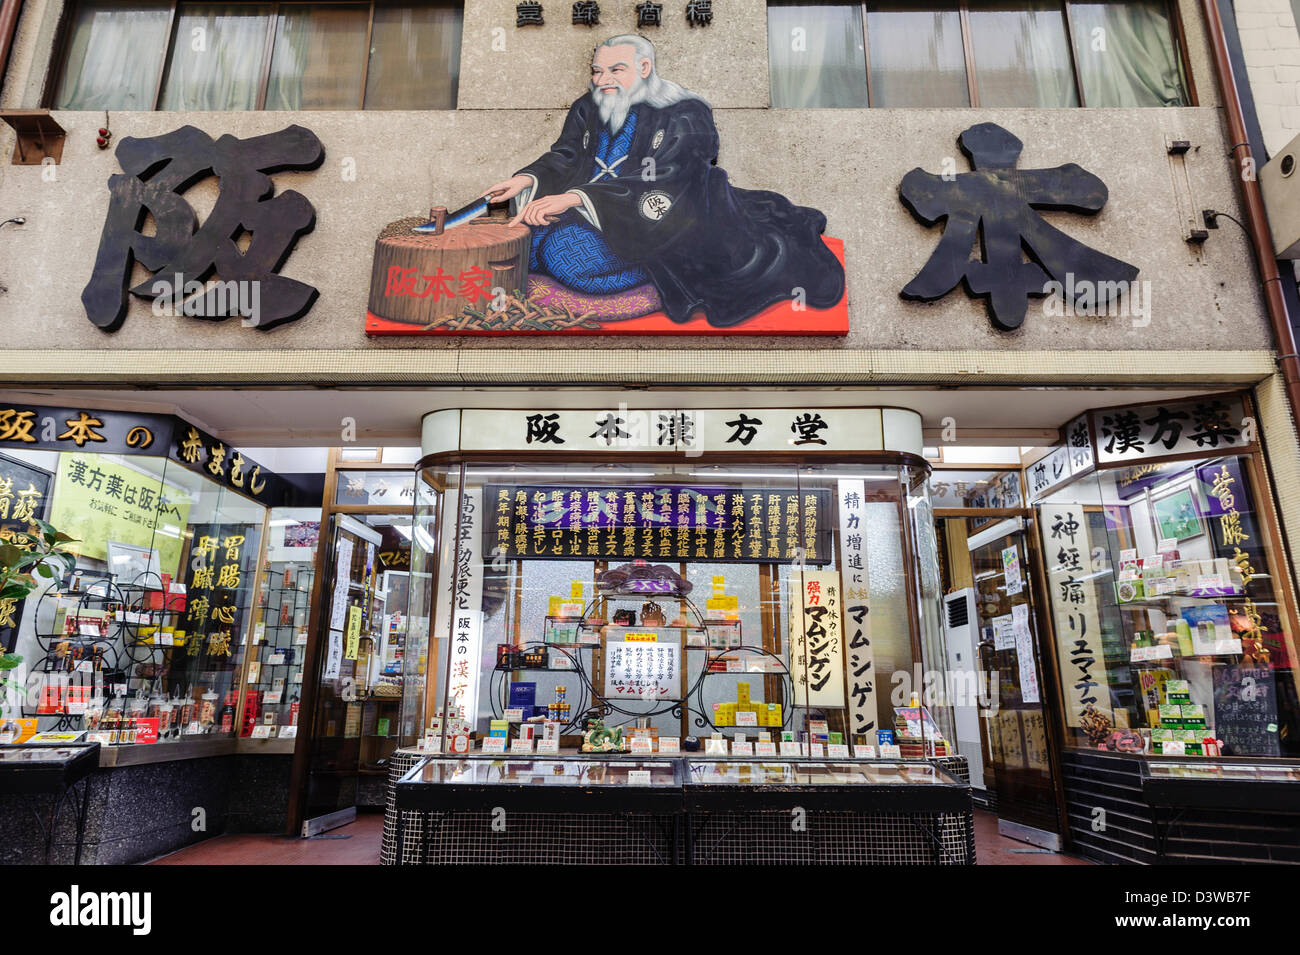 Japanese shop entrance with traditional decoration, Kyoto, Japan, Asia - Stock Image